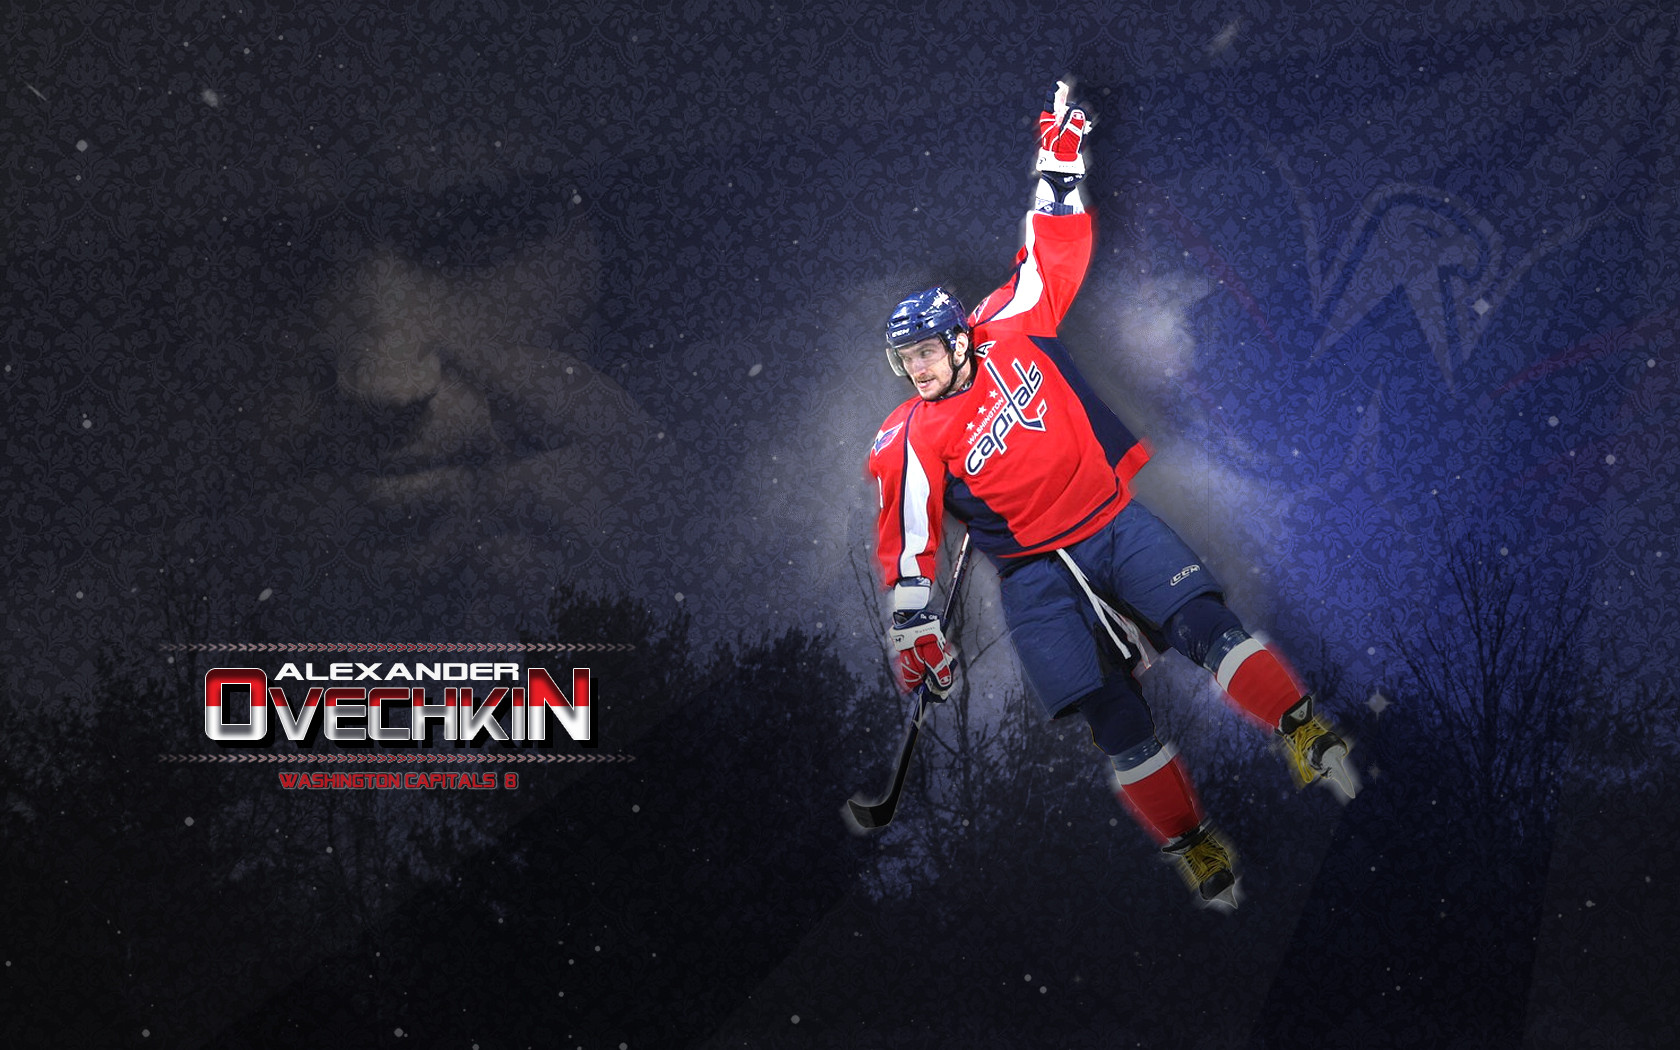 Alex Ovechkin Wallpapers 1680x1050